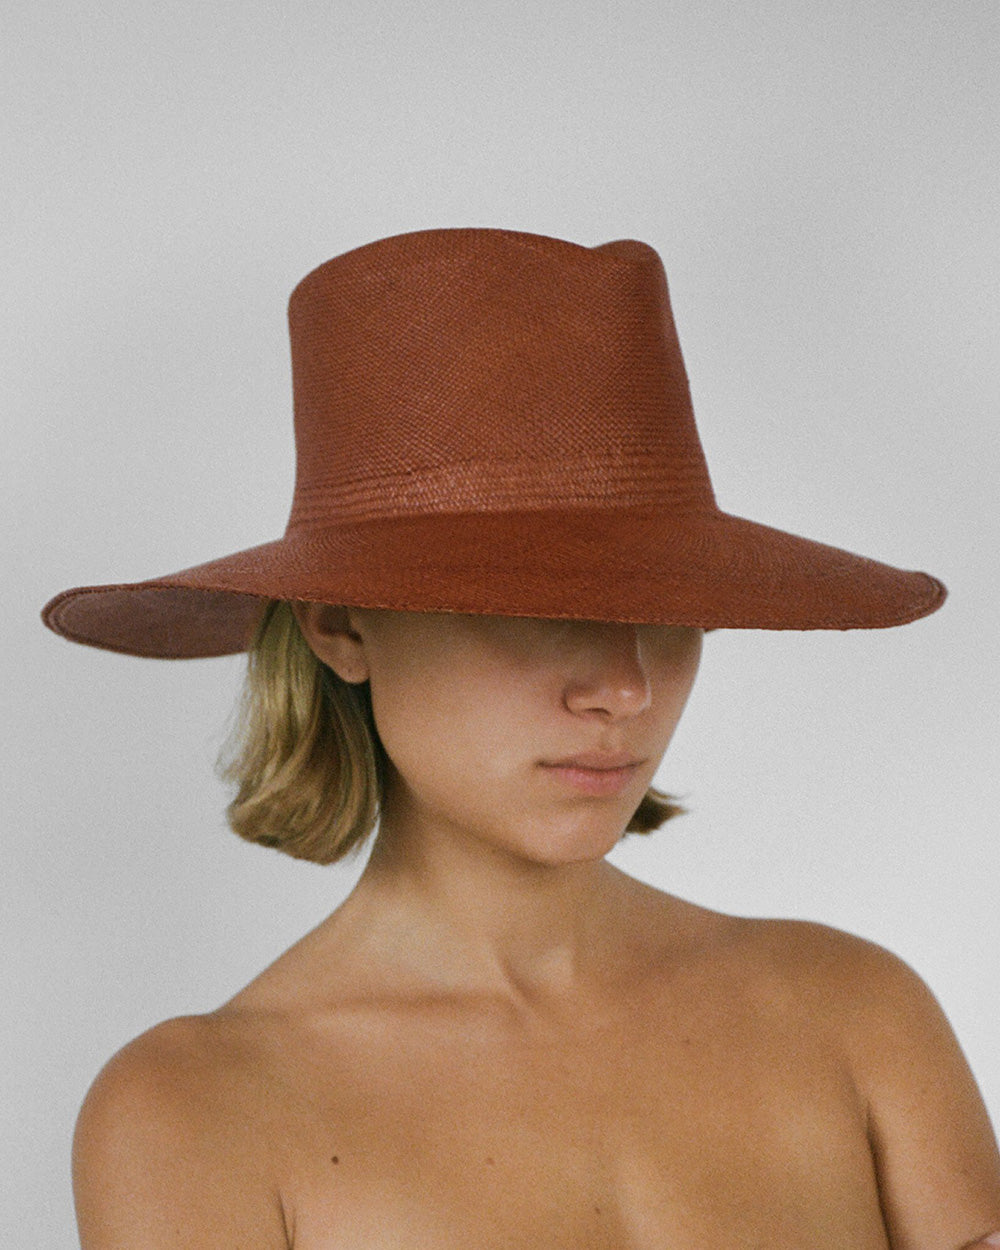 clyde caro hat in ancho